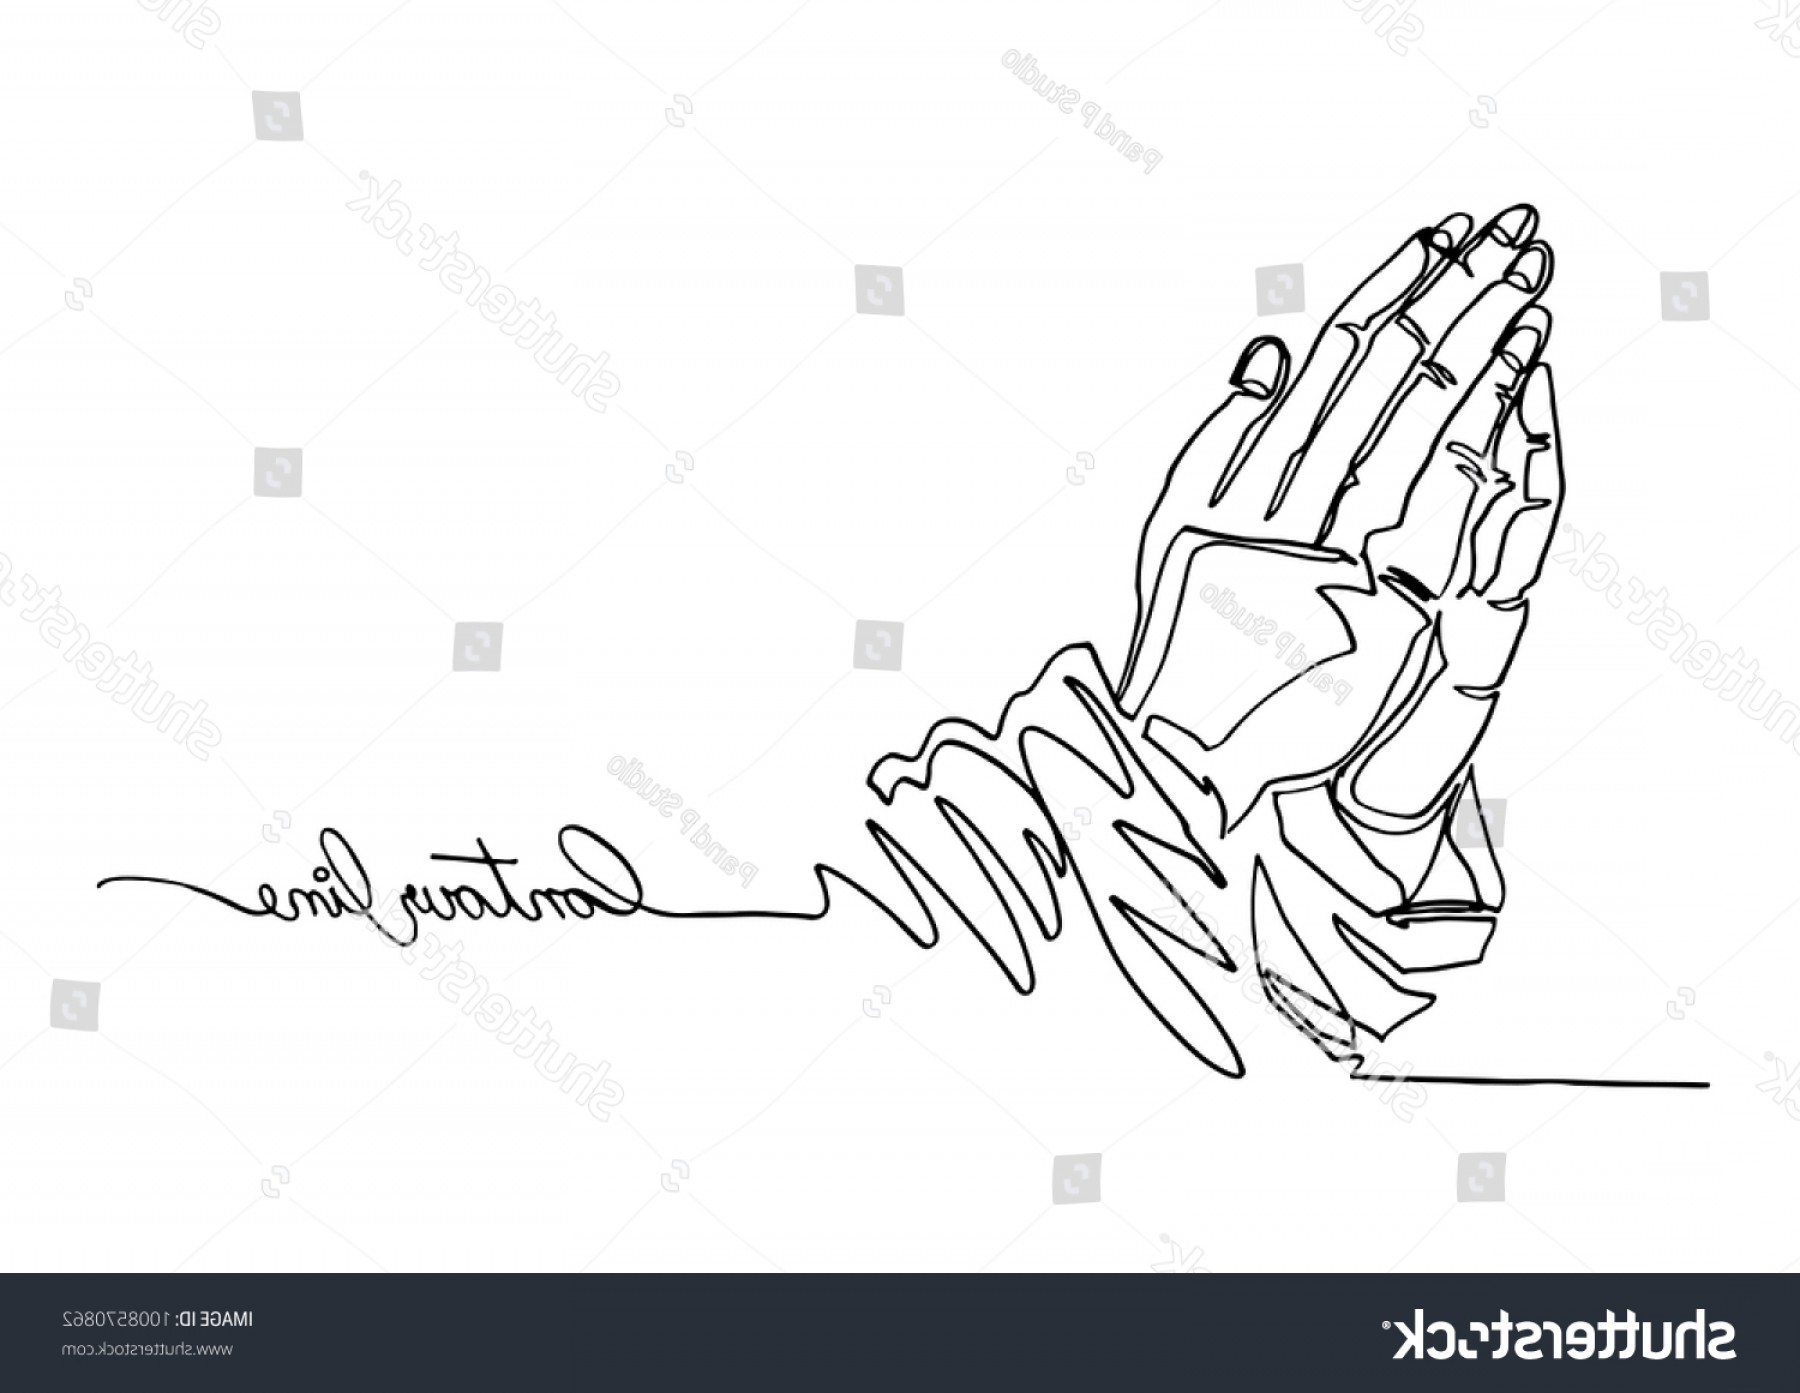 Praying Hands Vectors Shutterstock: Continuous Line Art One Drawing Prayer